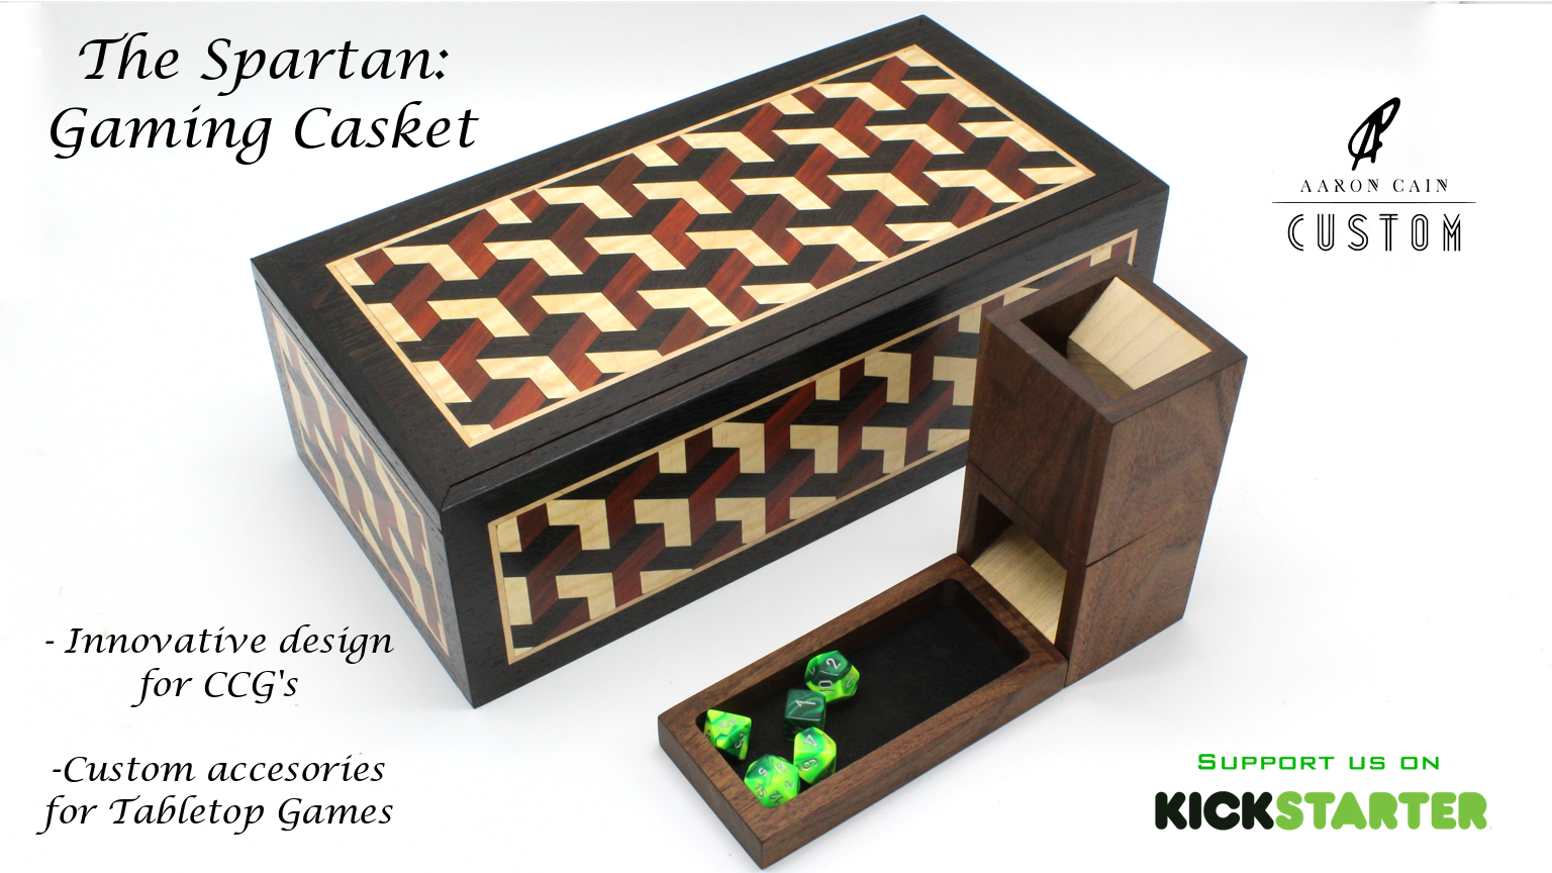 The Spartan: gaming casket is an innovative way to store and transport your CCG cube or other table top games and accessories.